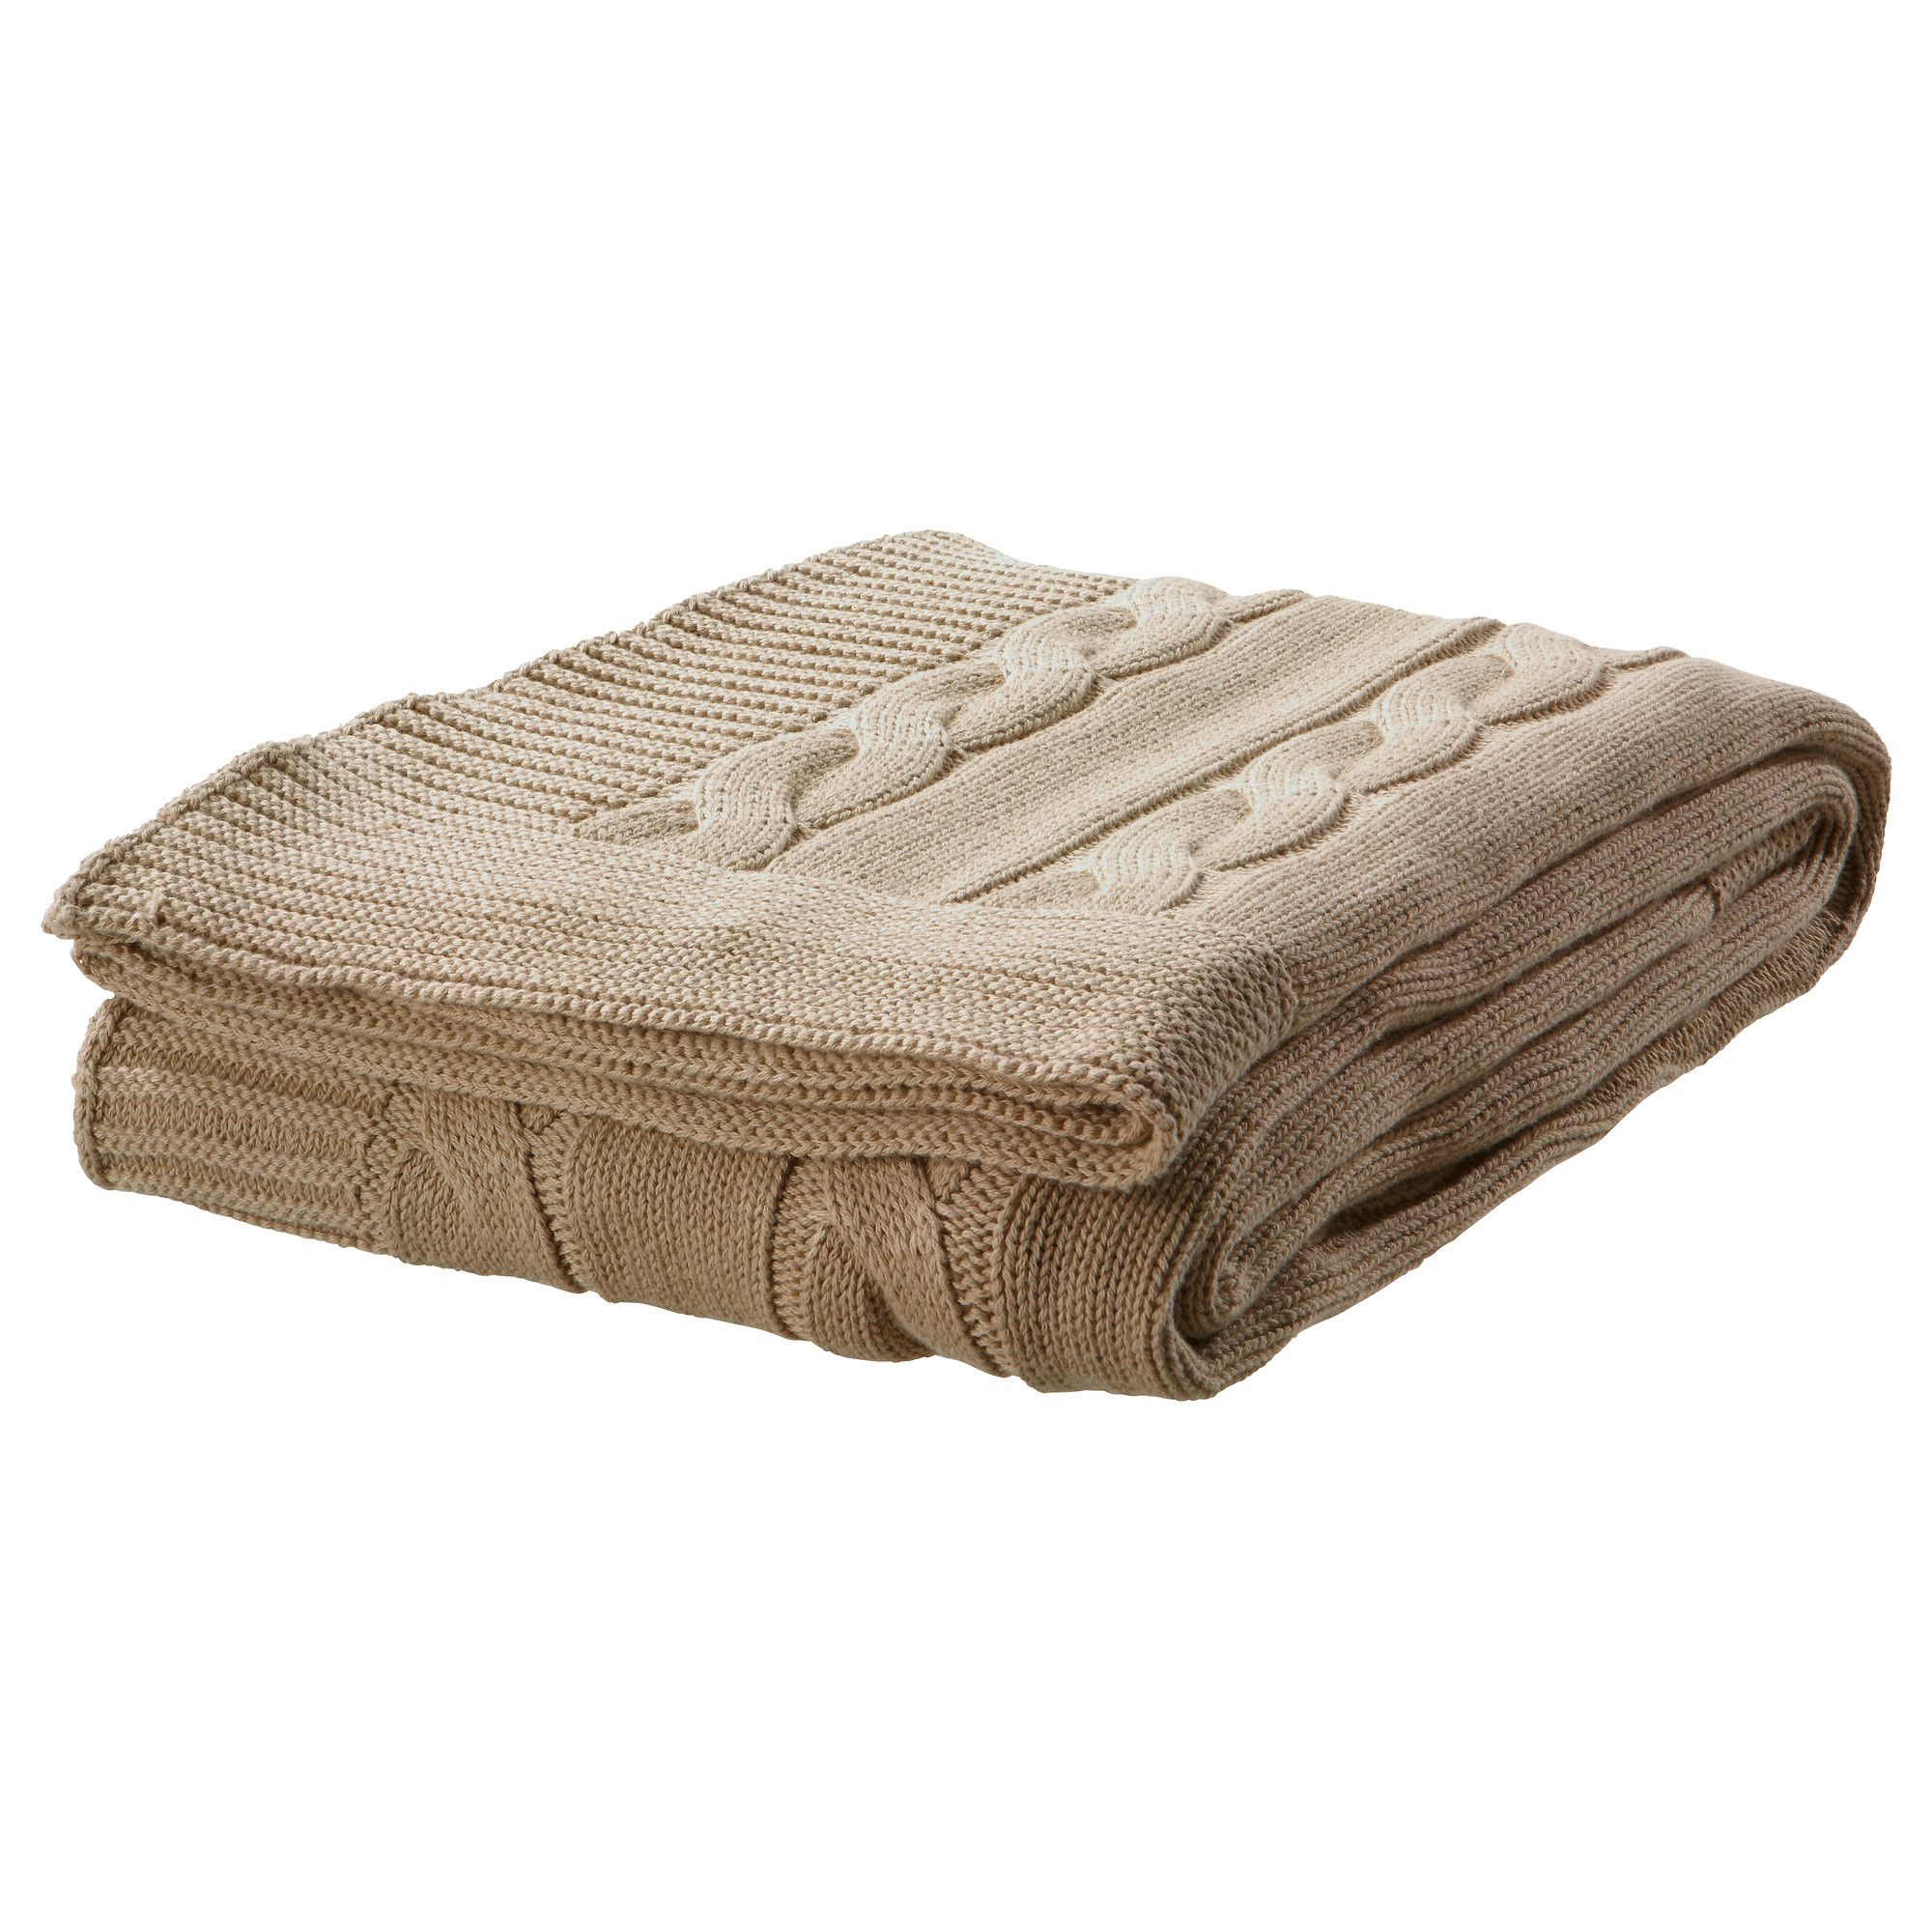 Ursula Throw Beige Ikea 30 I Love The Idea Of Having Blankets And Throws For Comfy Impromptu Jam Sessions